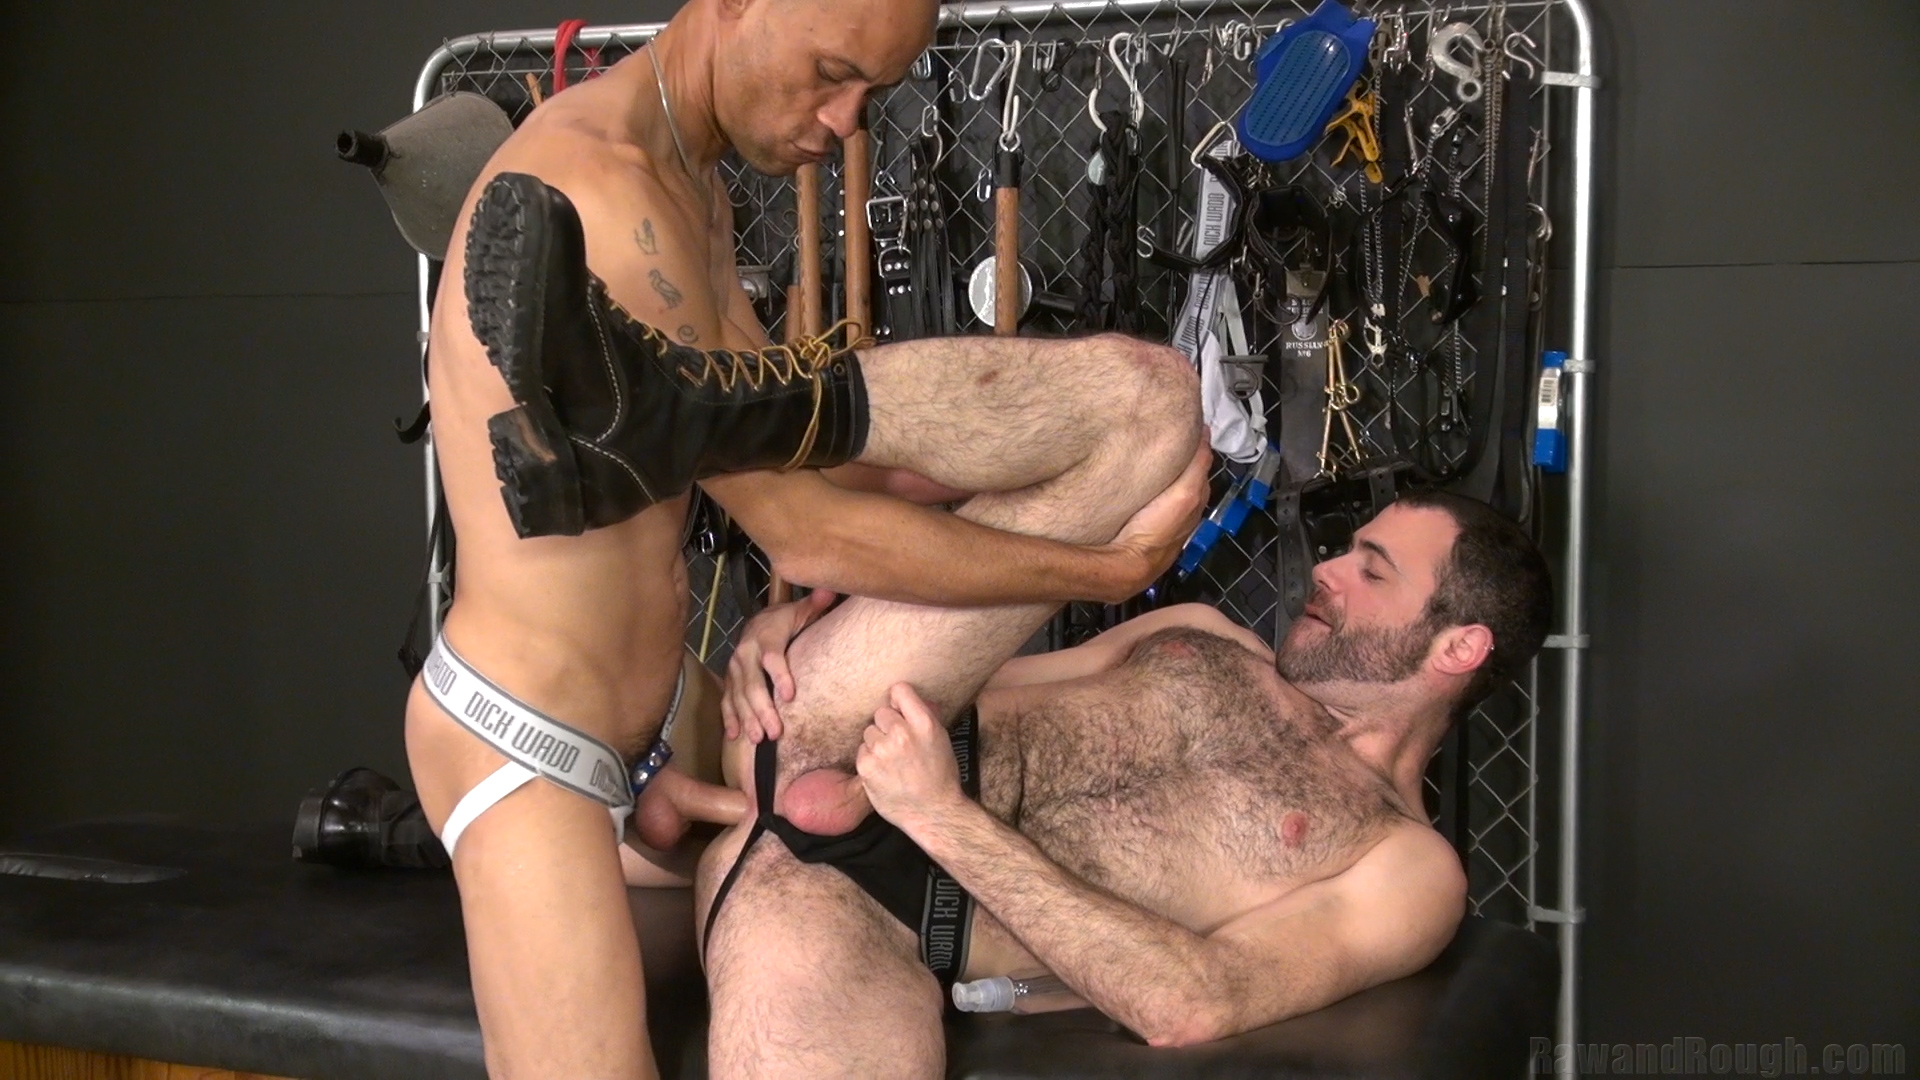 Nasty Gay Hunky Pornstar Takes Turns